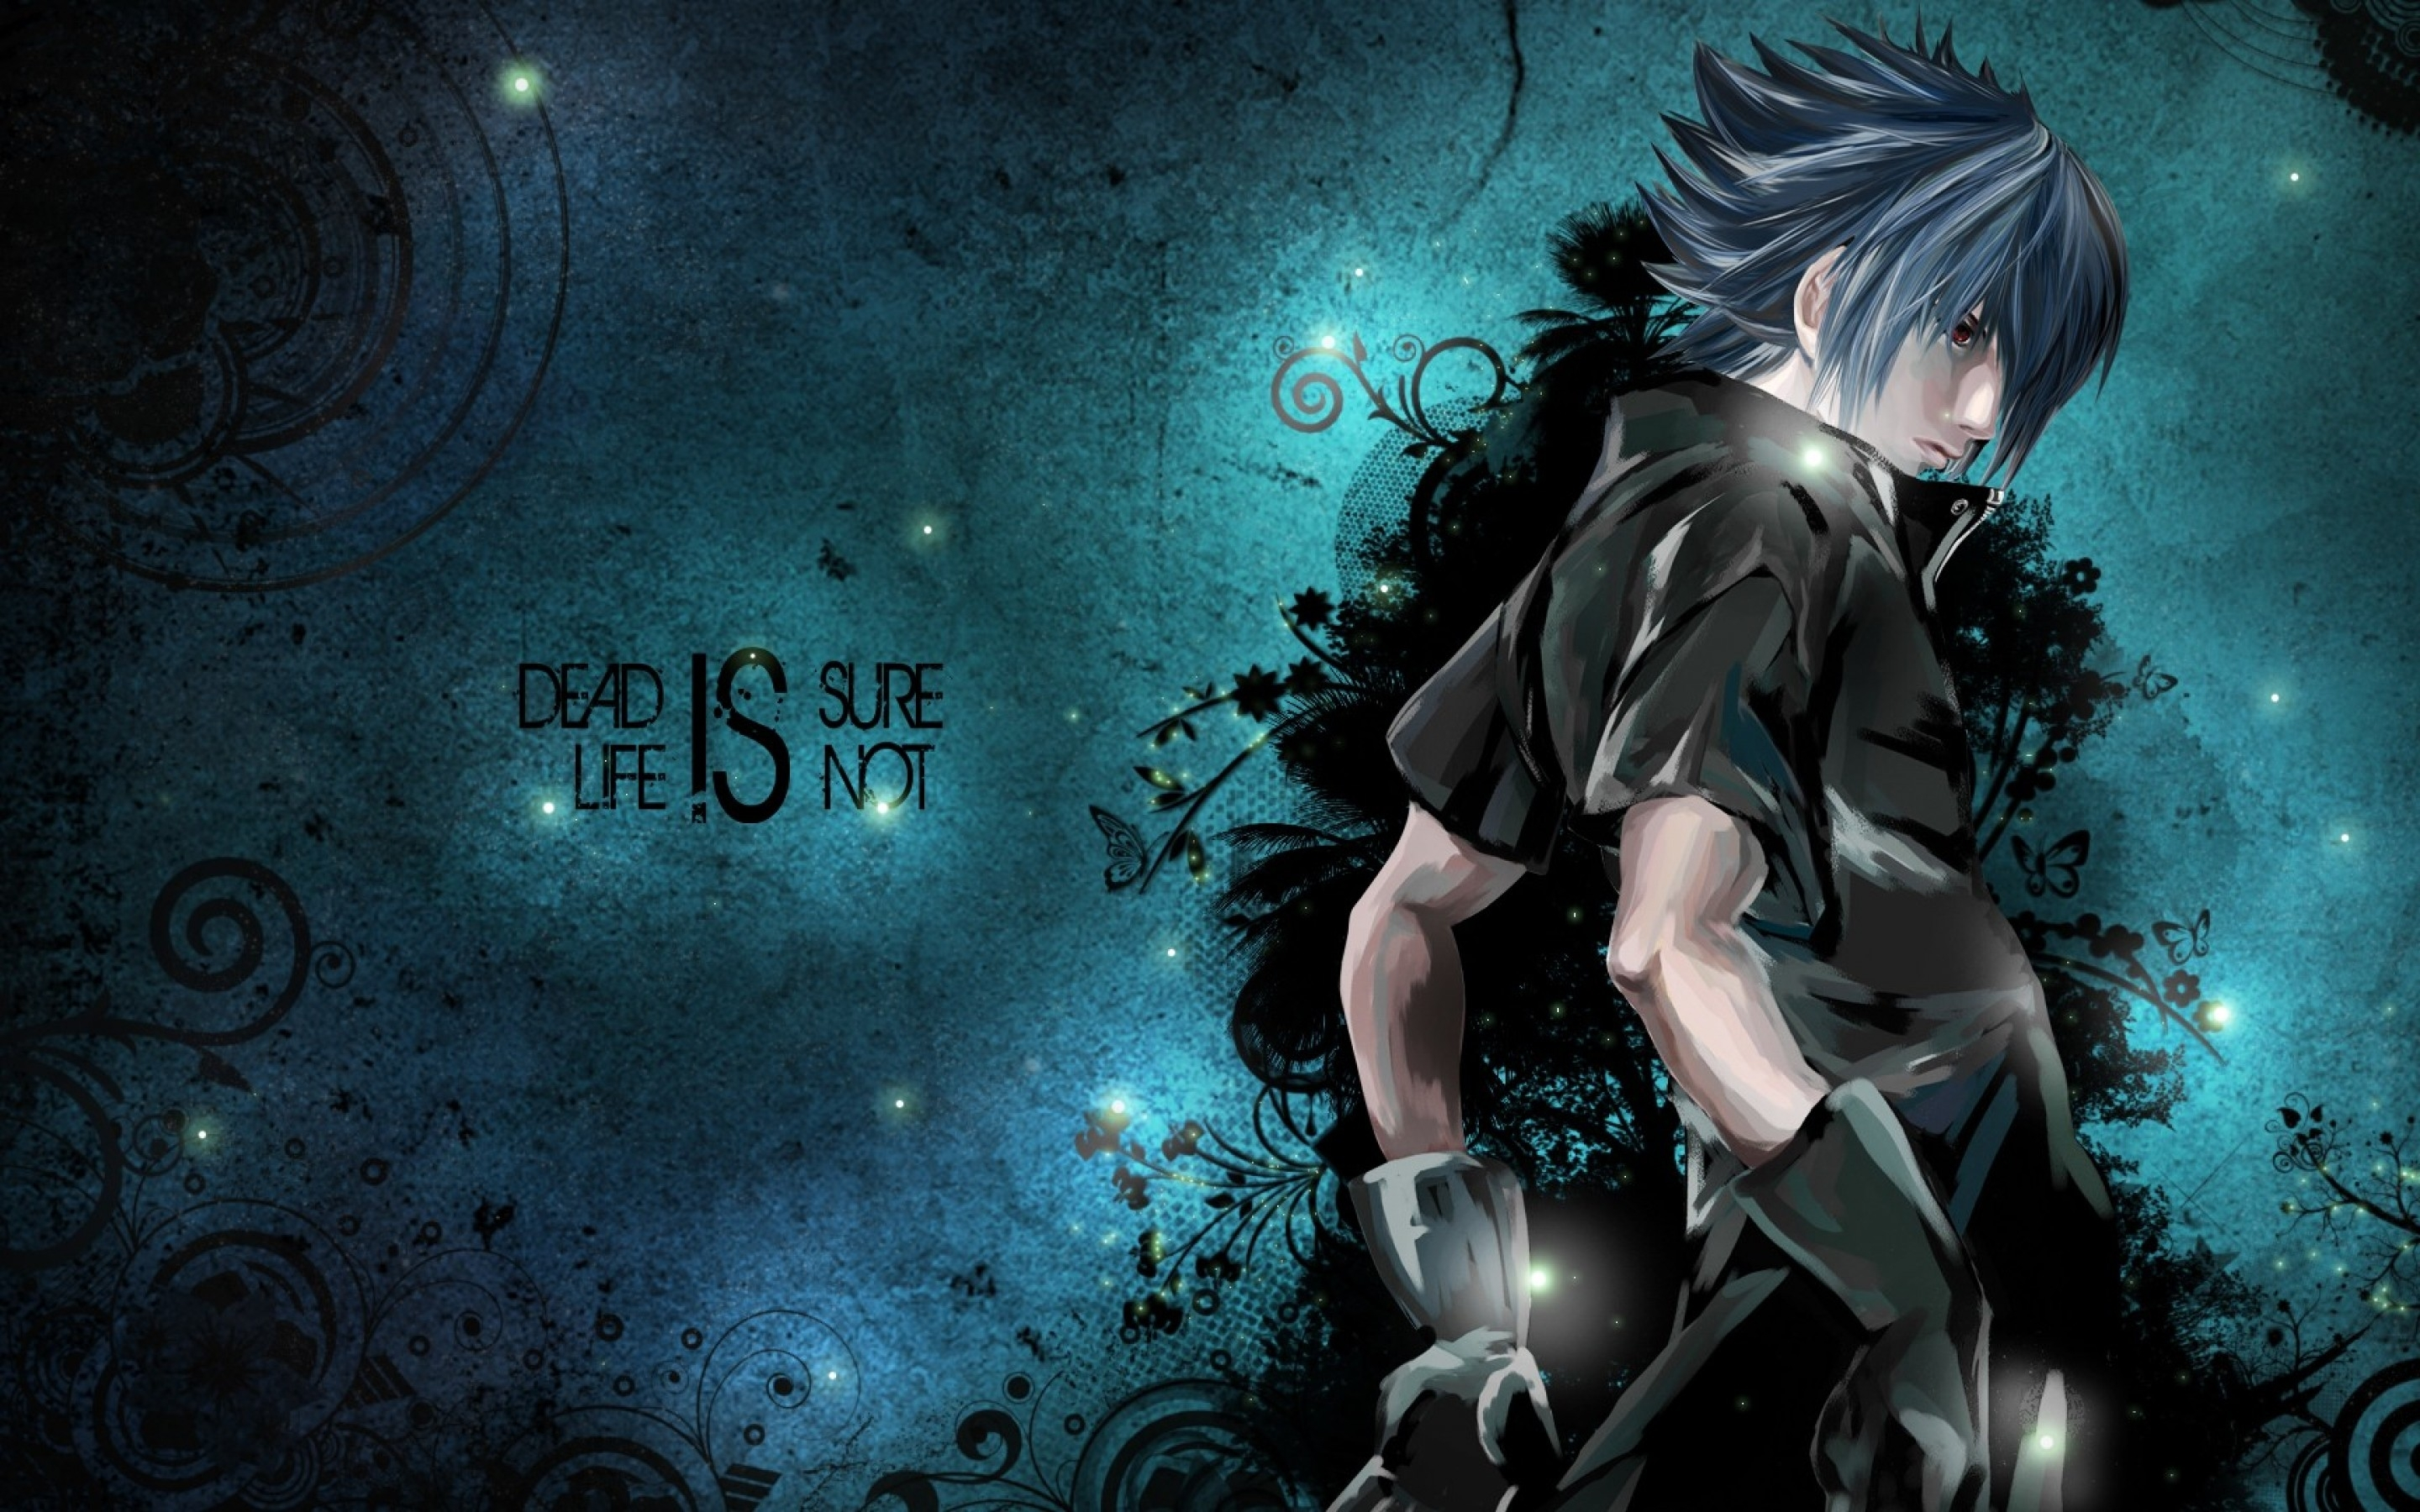 anime wallpapers for pc 2582 - hd wallpaper site